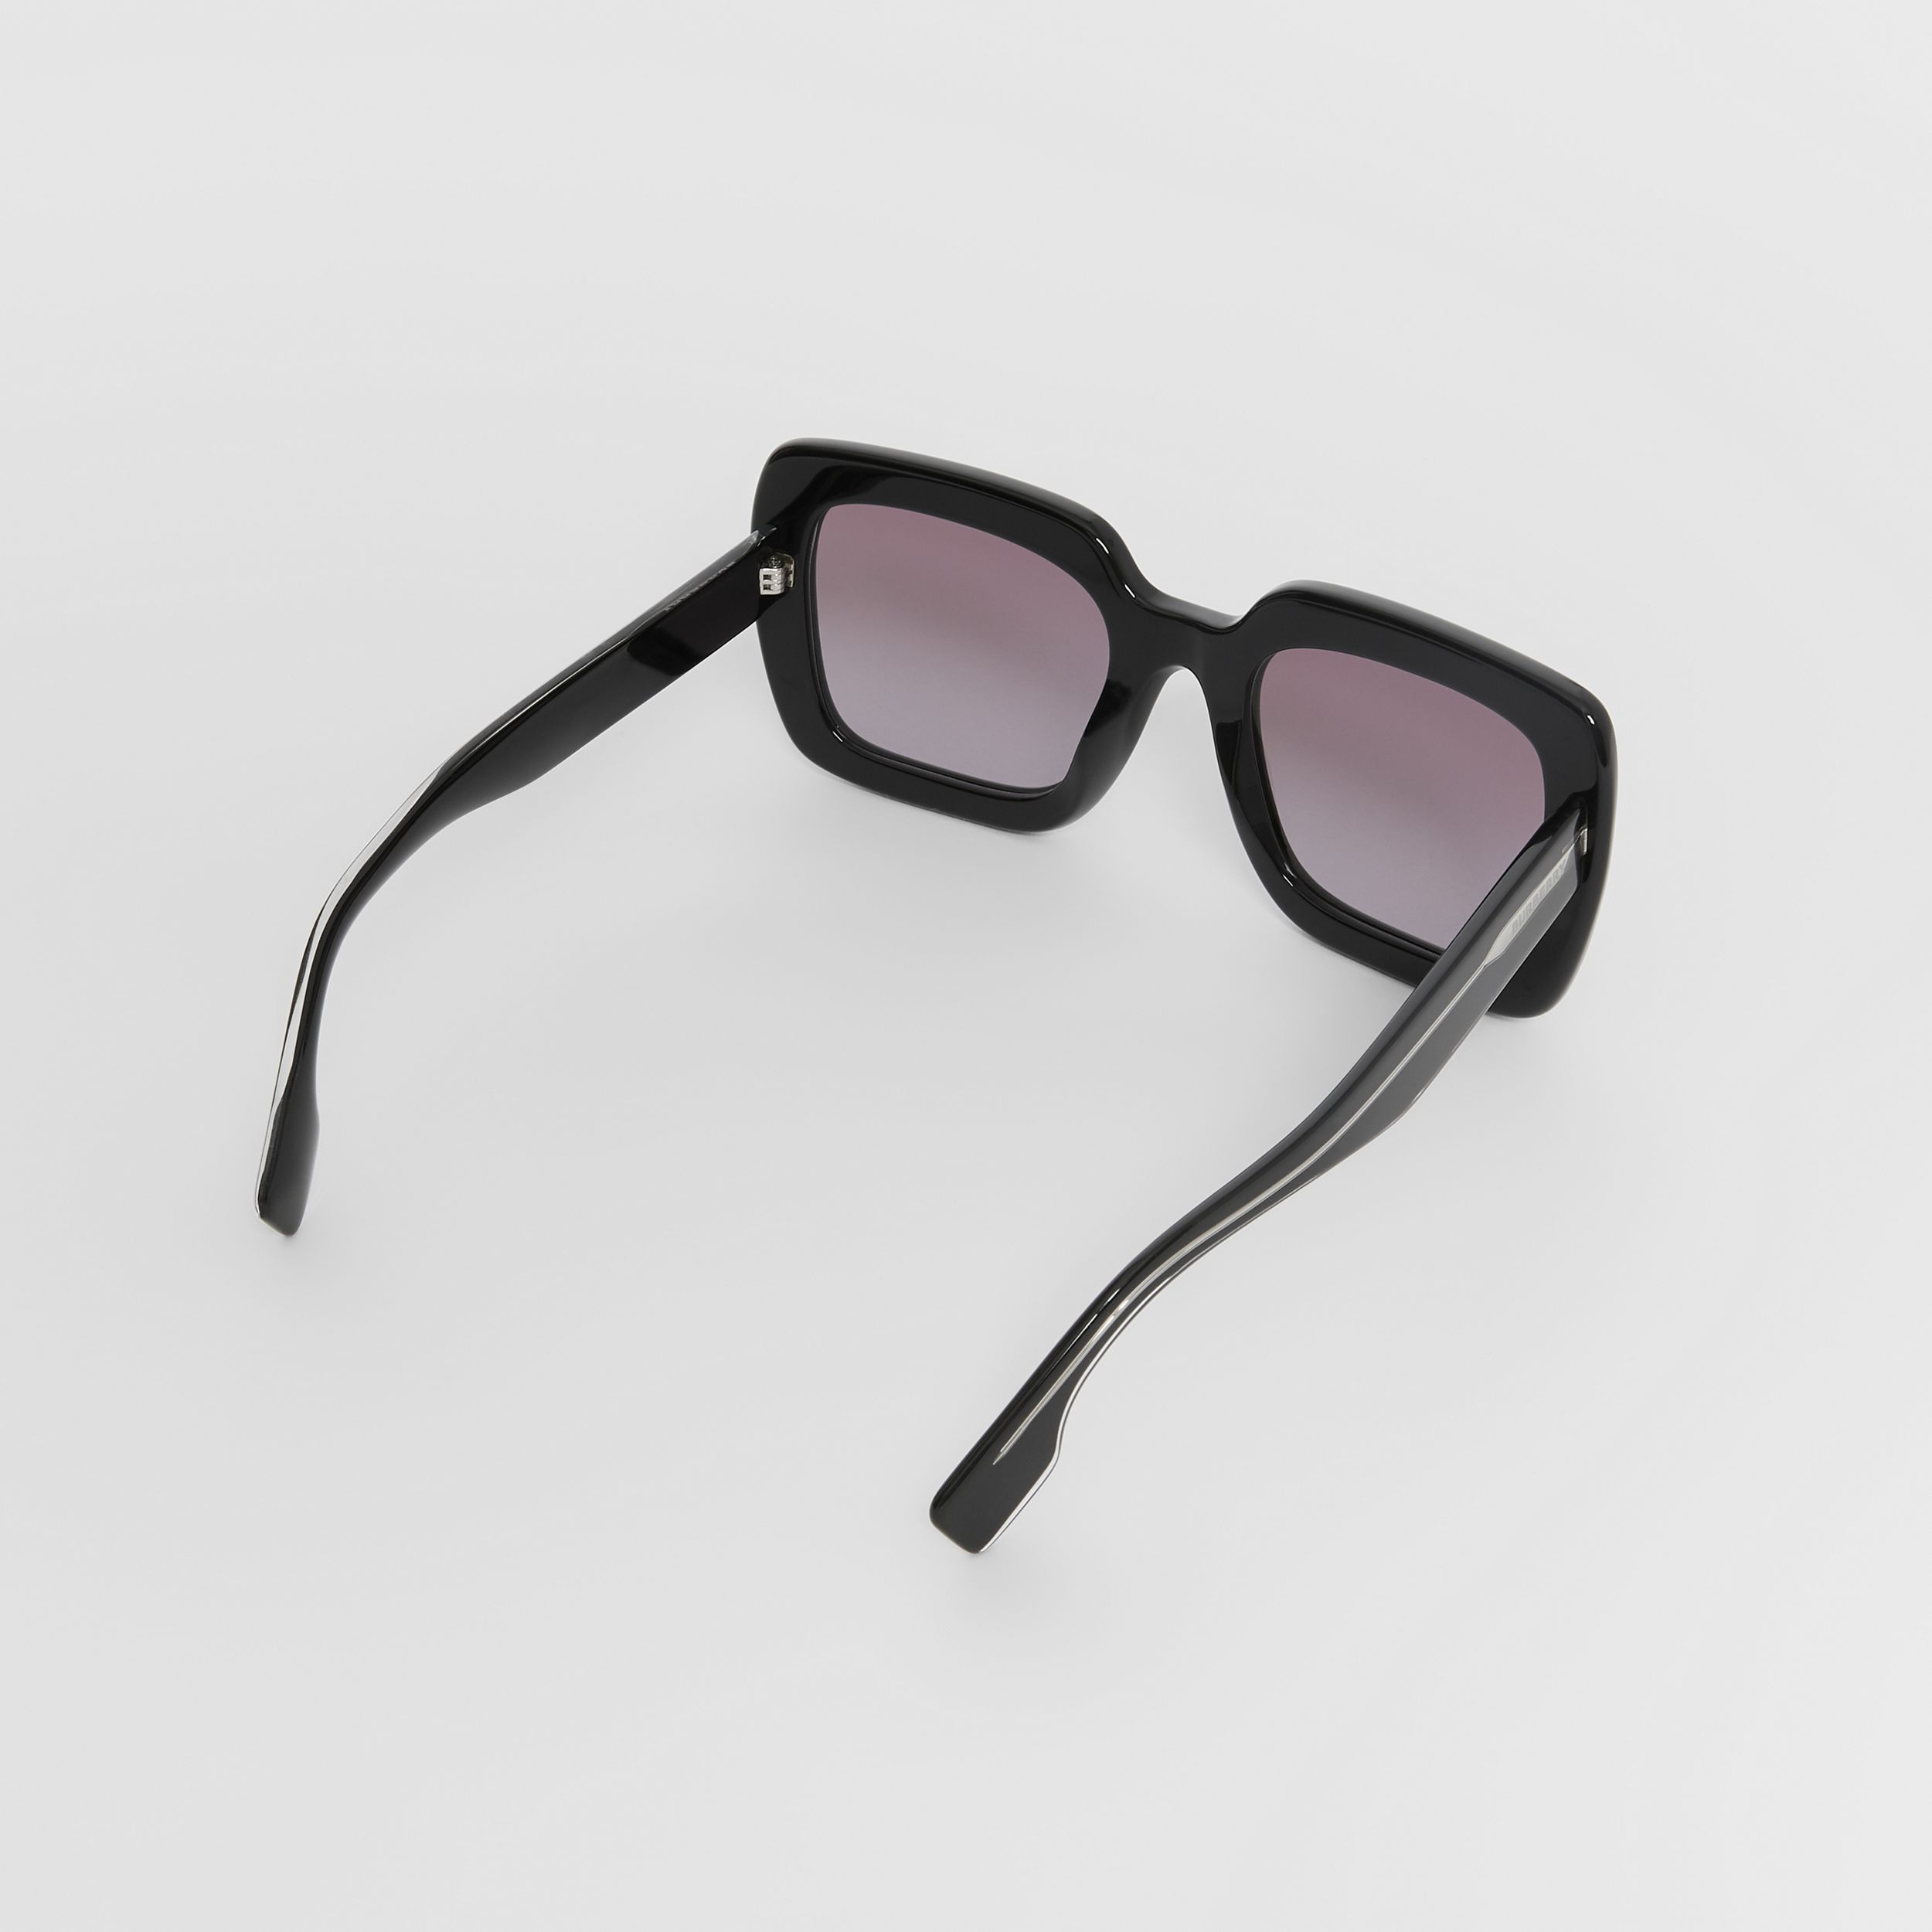 Oversized Square Frame Sunglasses in Black - Women | Burberry Singapore - 4